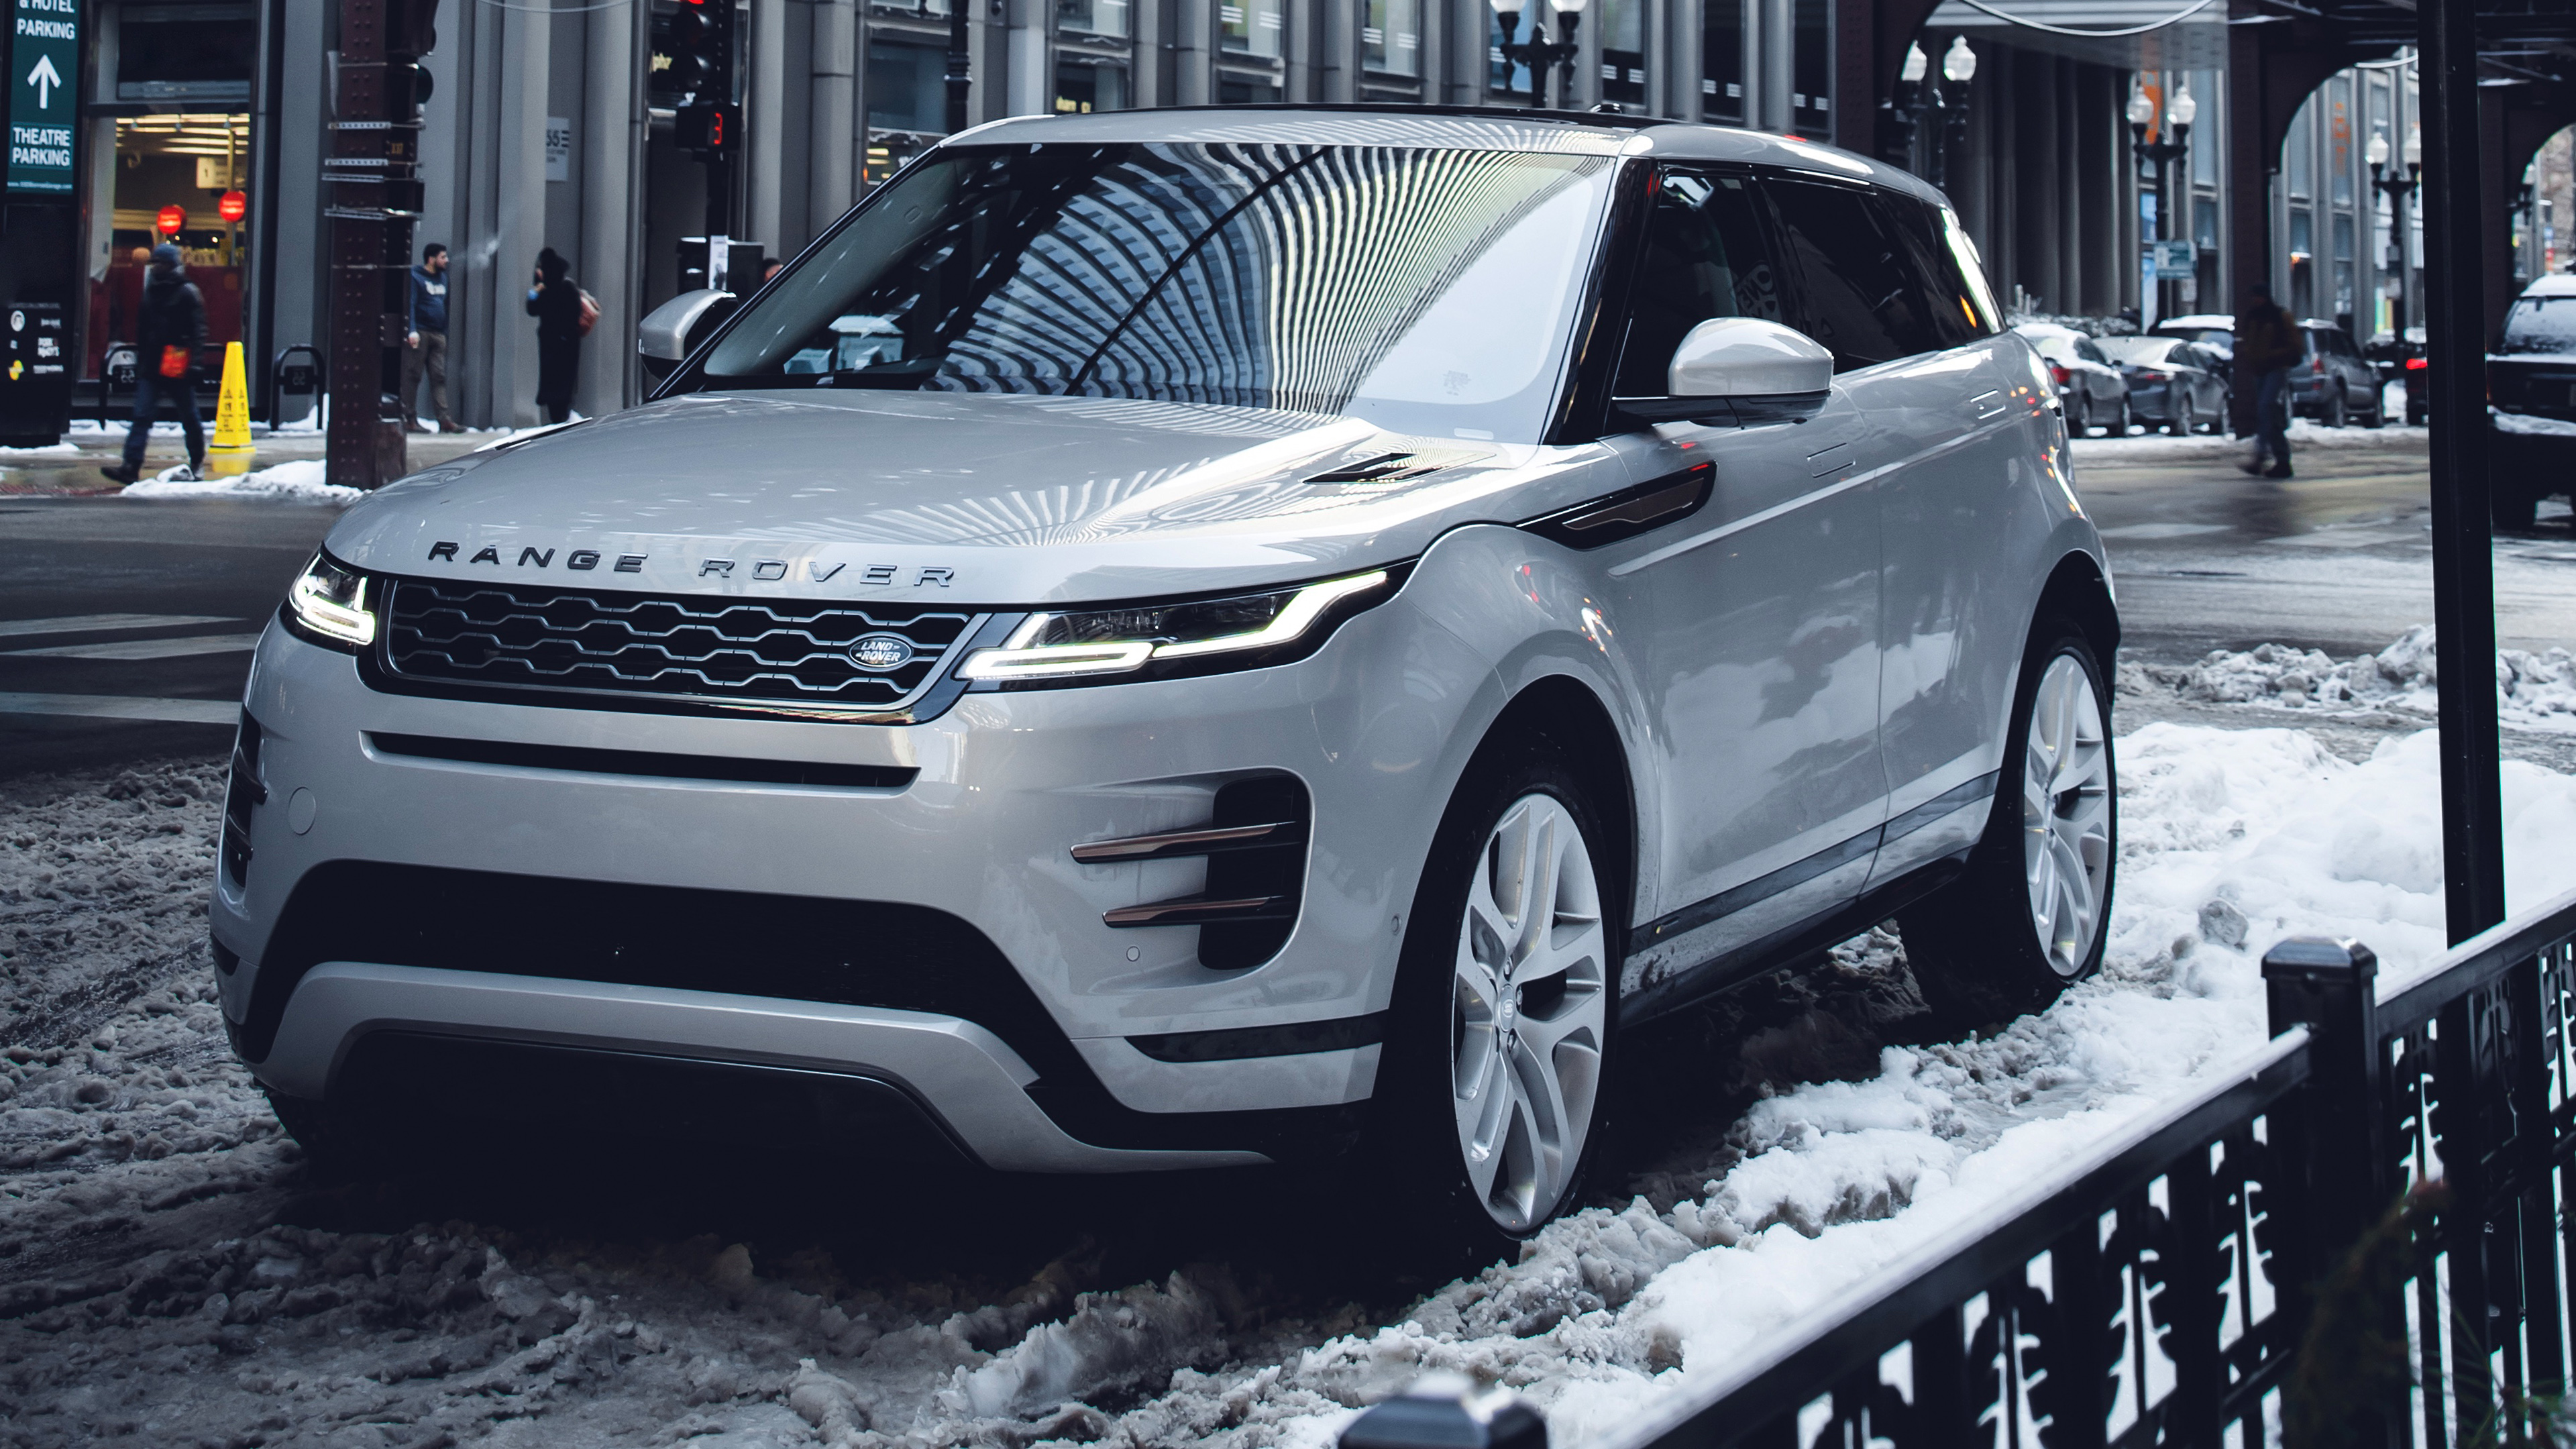 Range Rover Evoque P300 S R Dynamic 2019 4k Wallpapers Wallpapers Hd